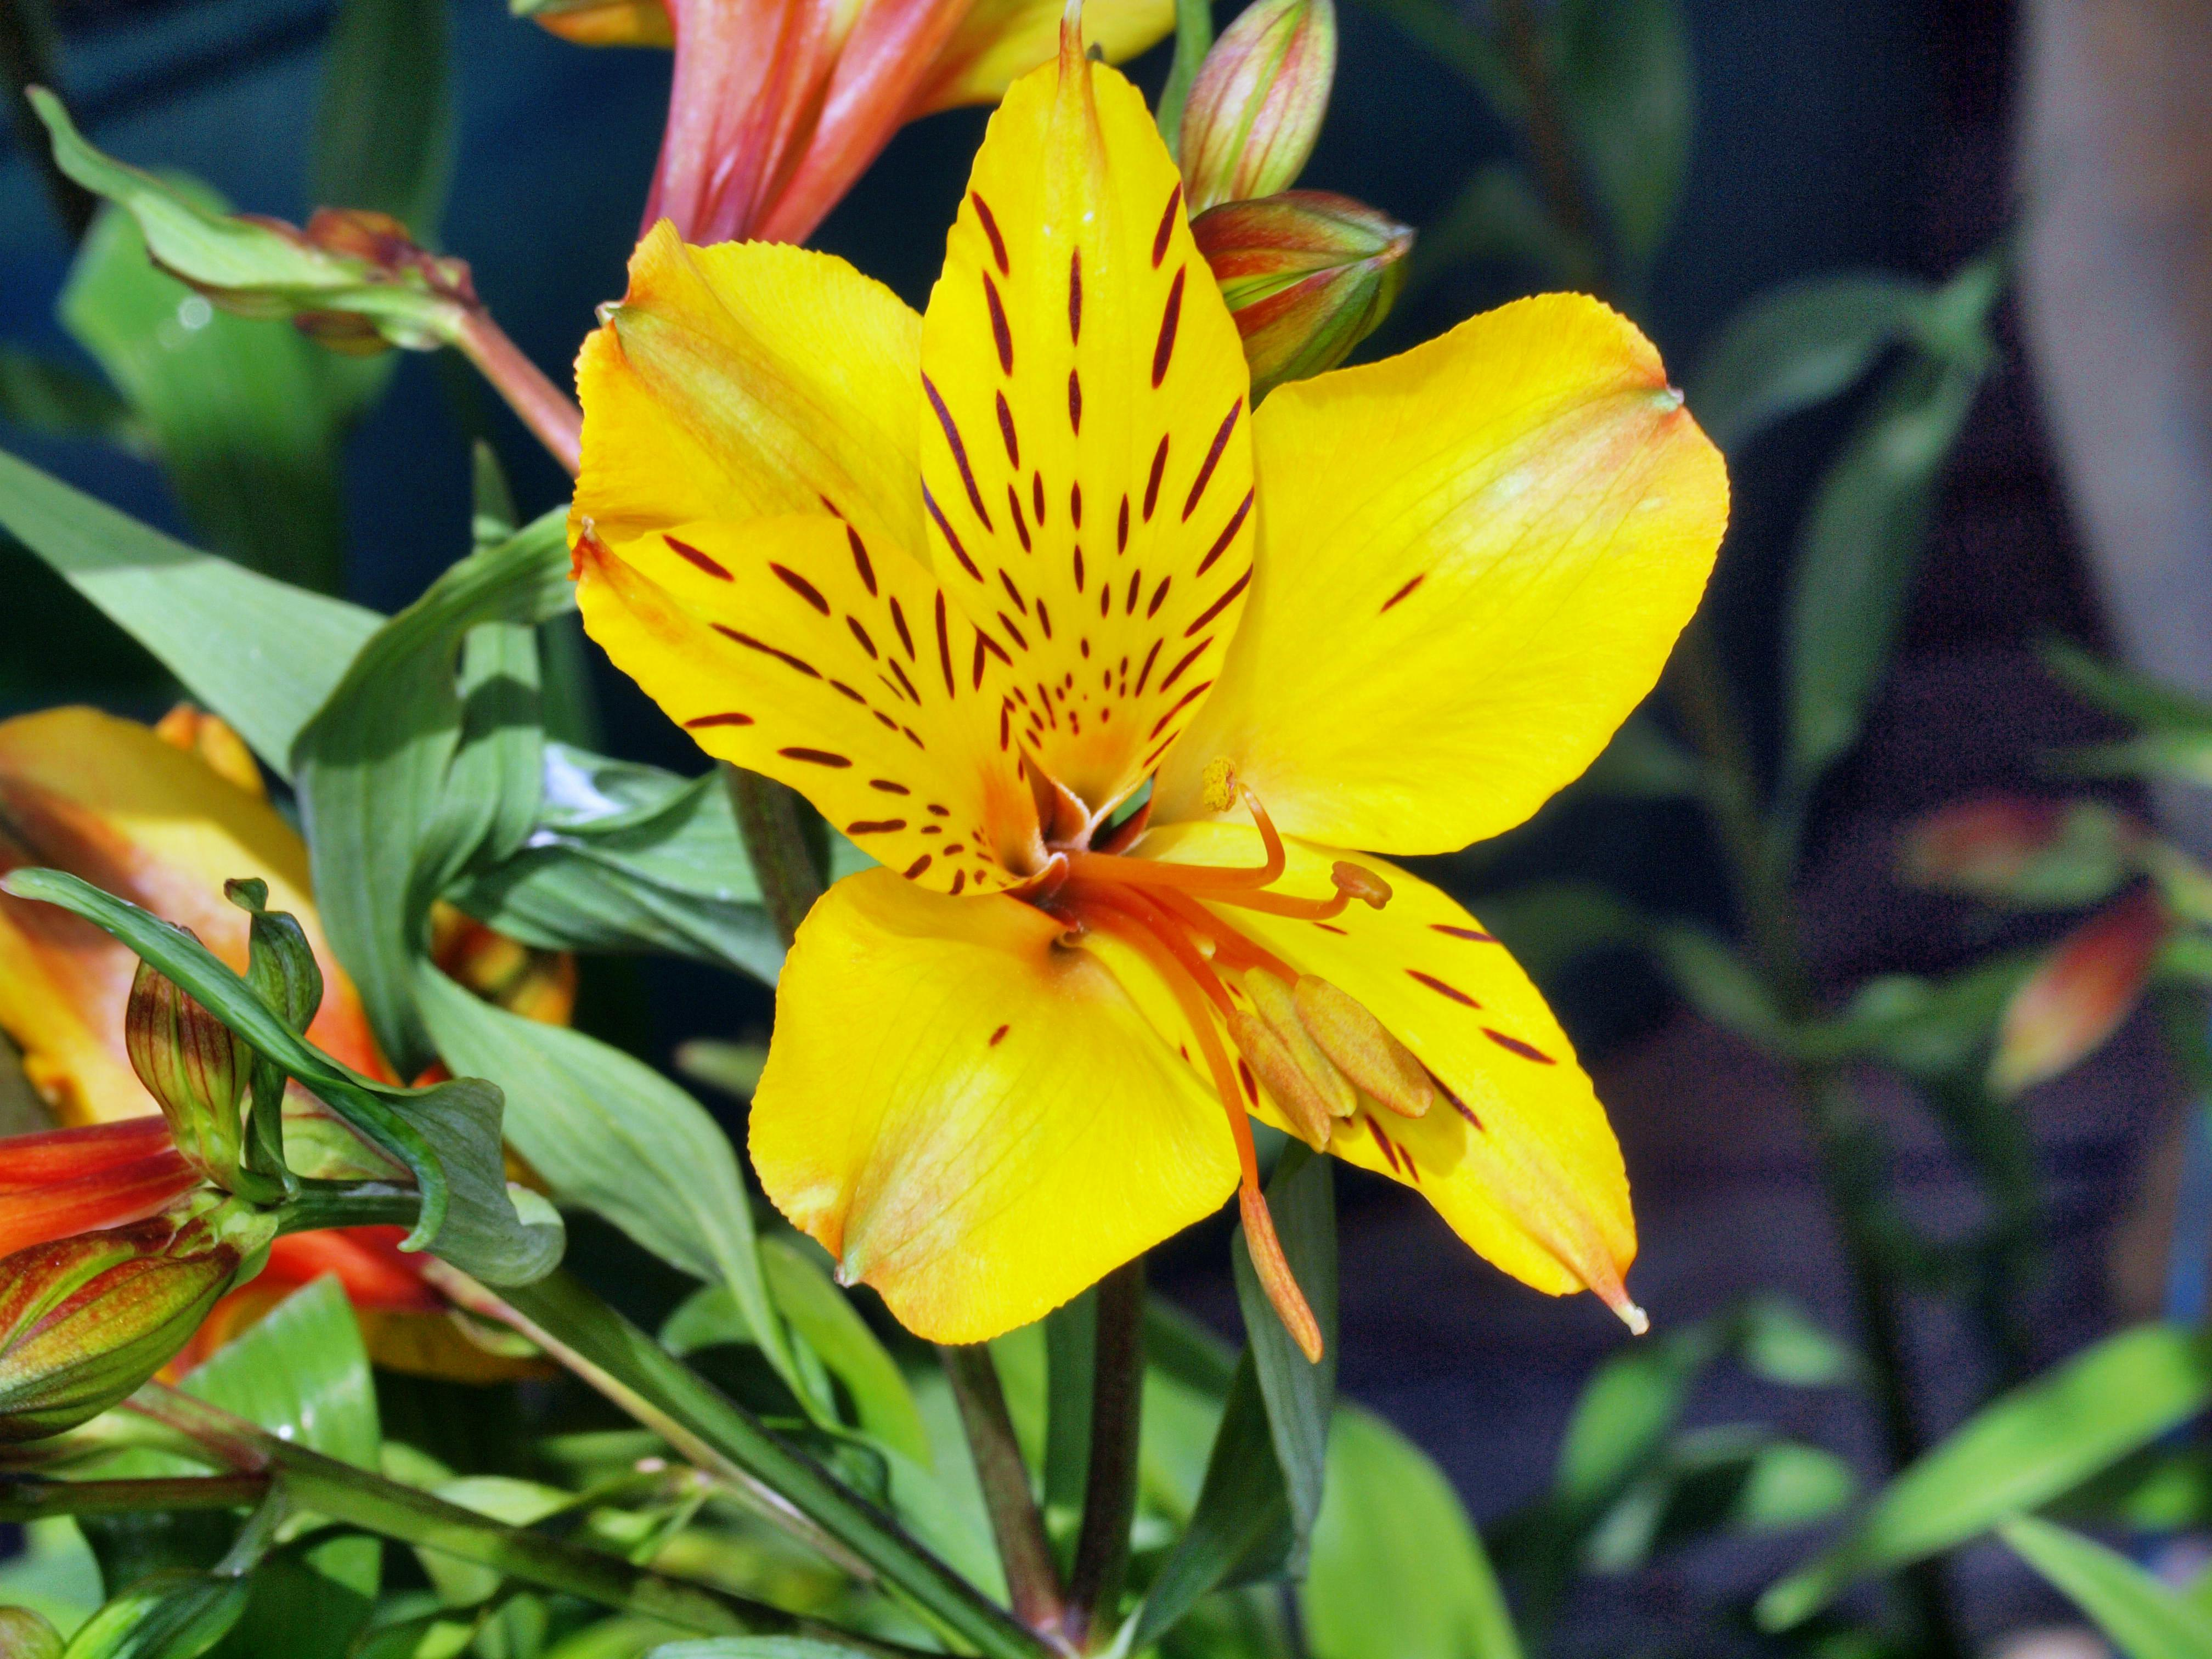 This should be Alstroemeria-2.jpeg.  Is it missing?